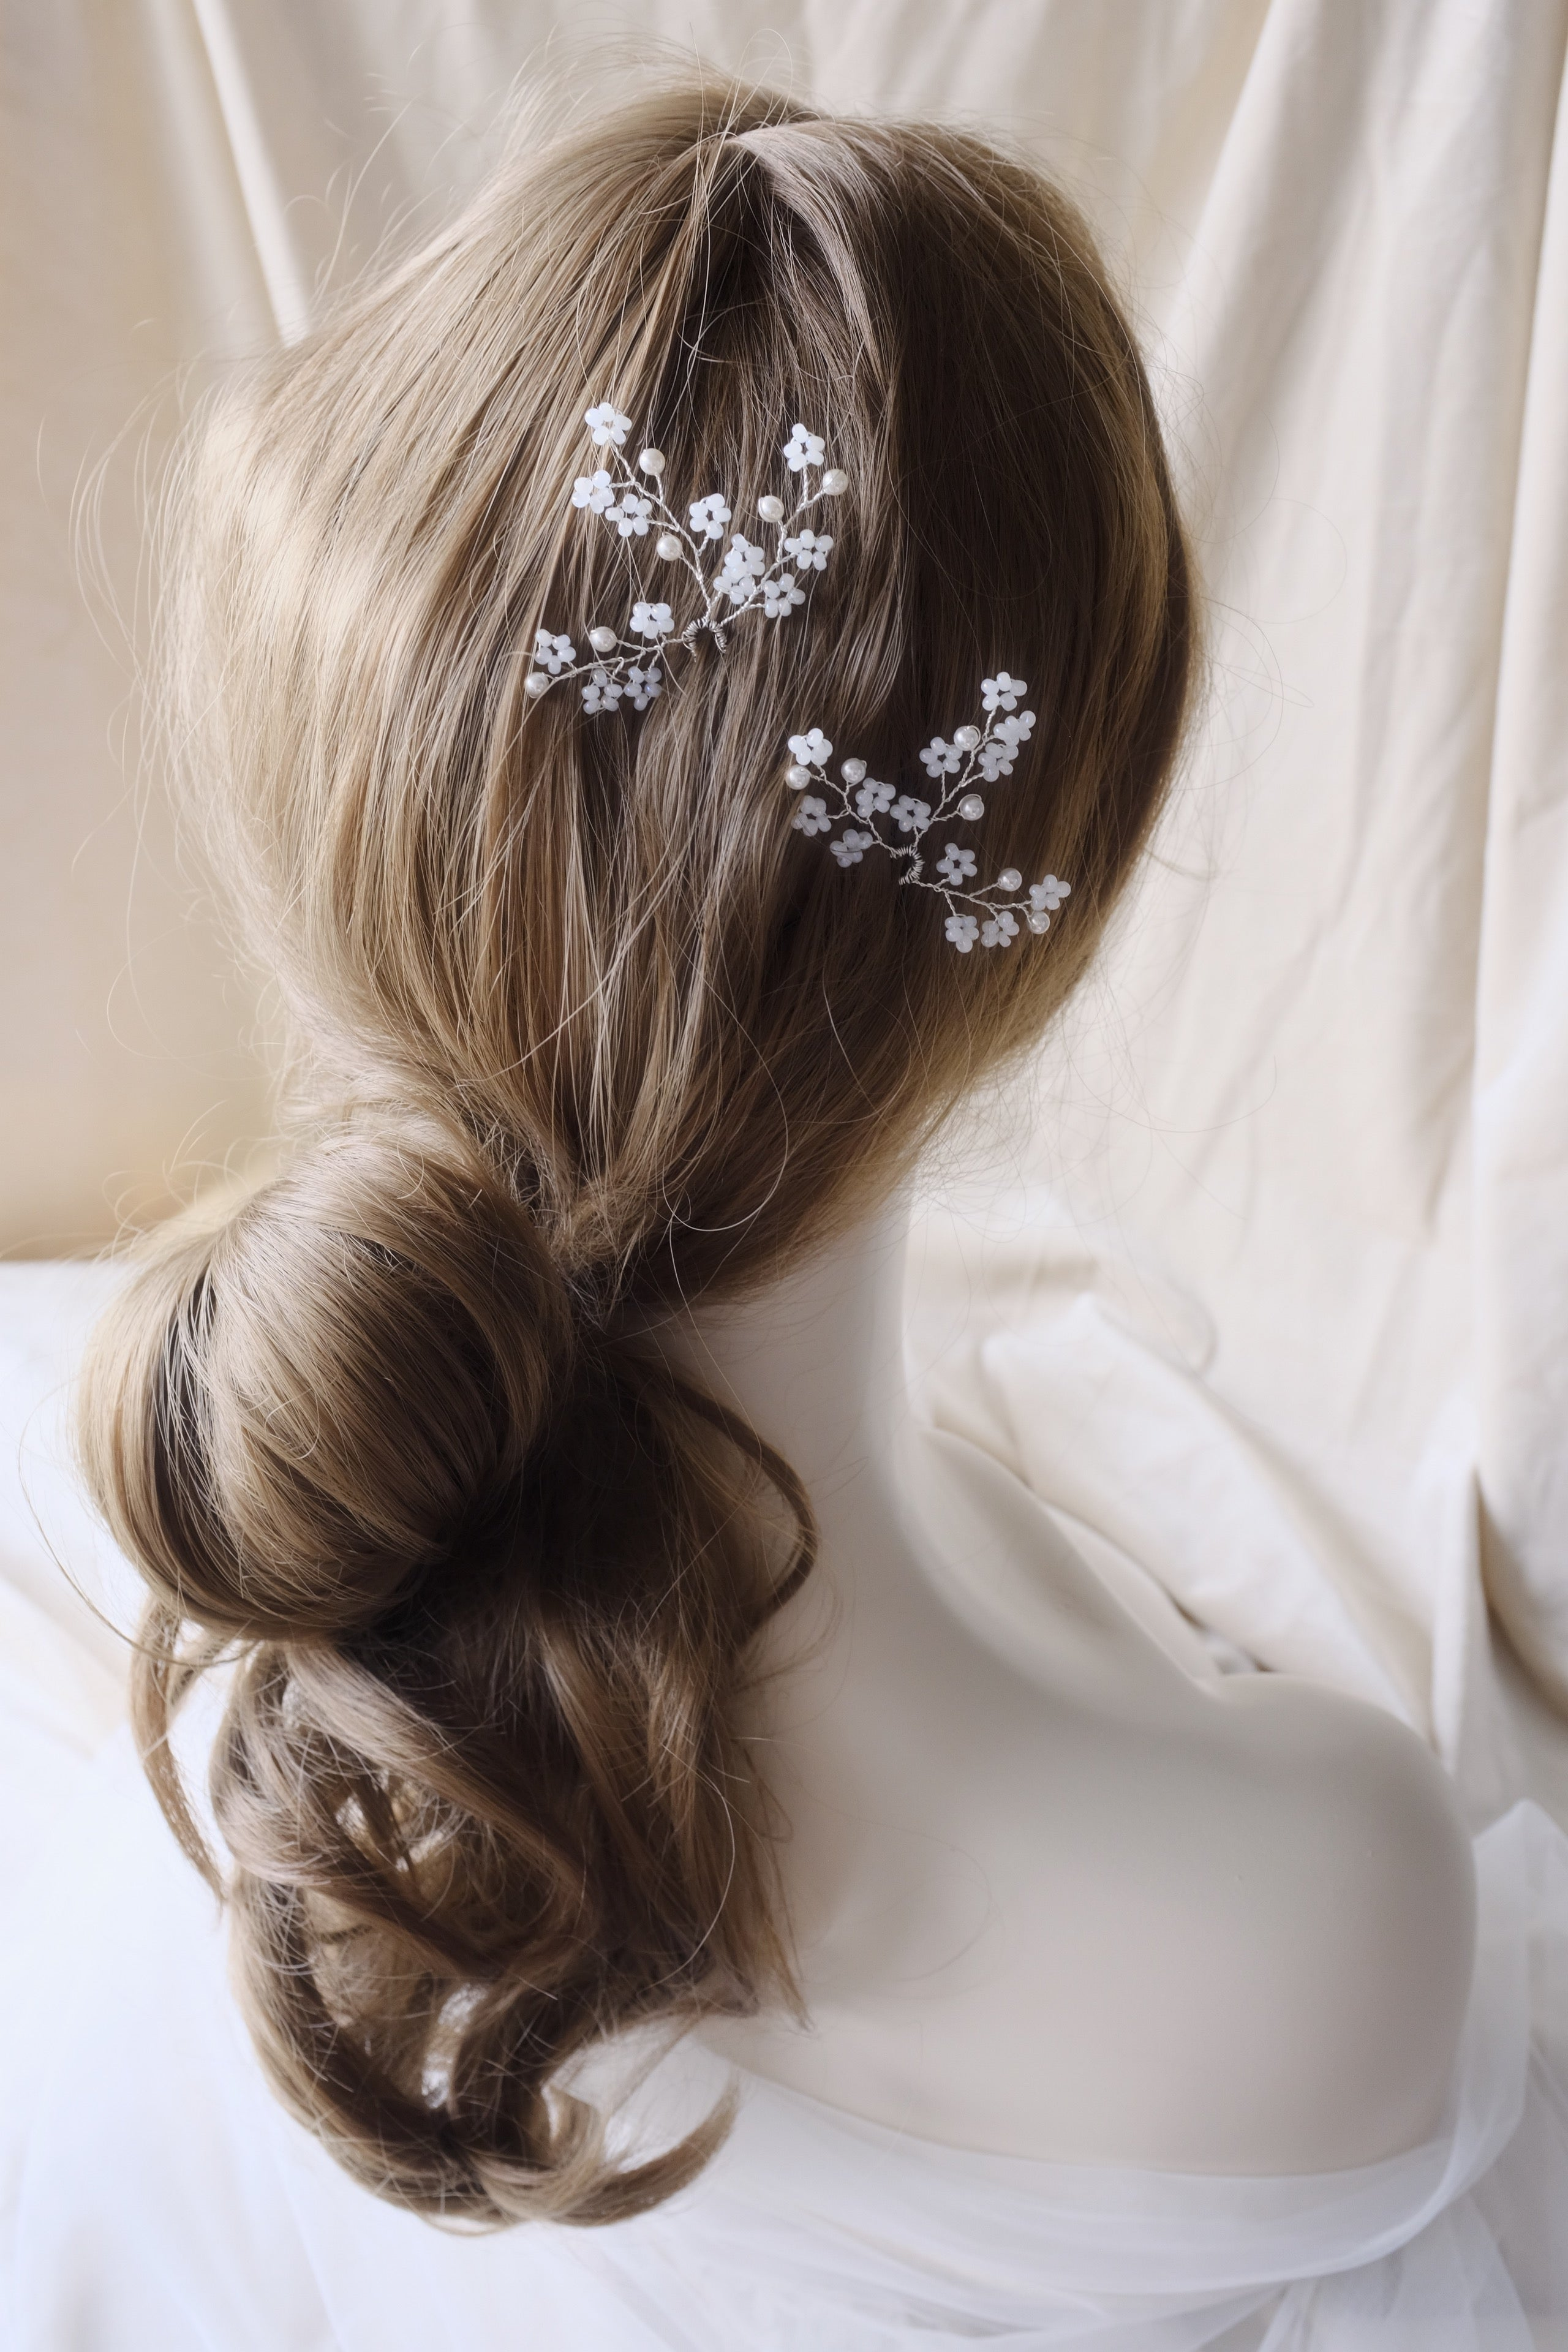 Elegant bridal updo loose curls with hair accessories